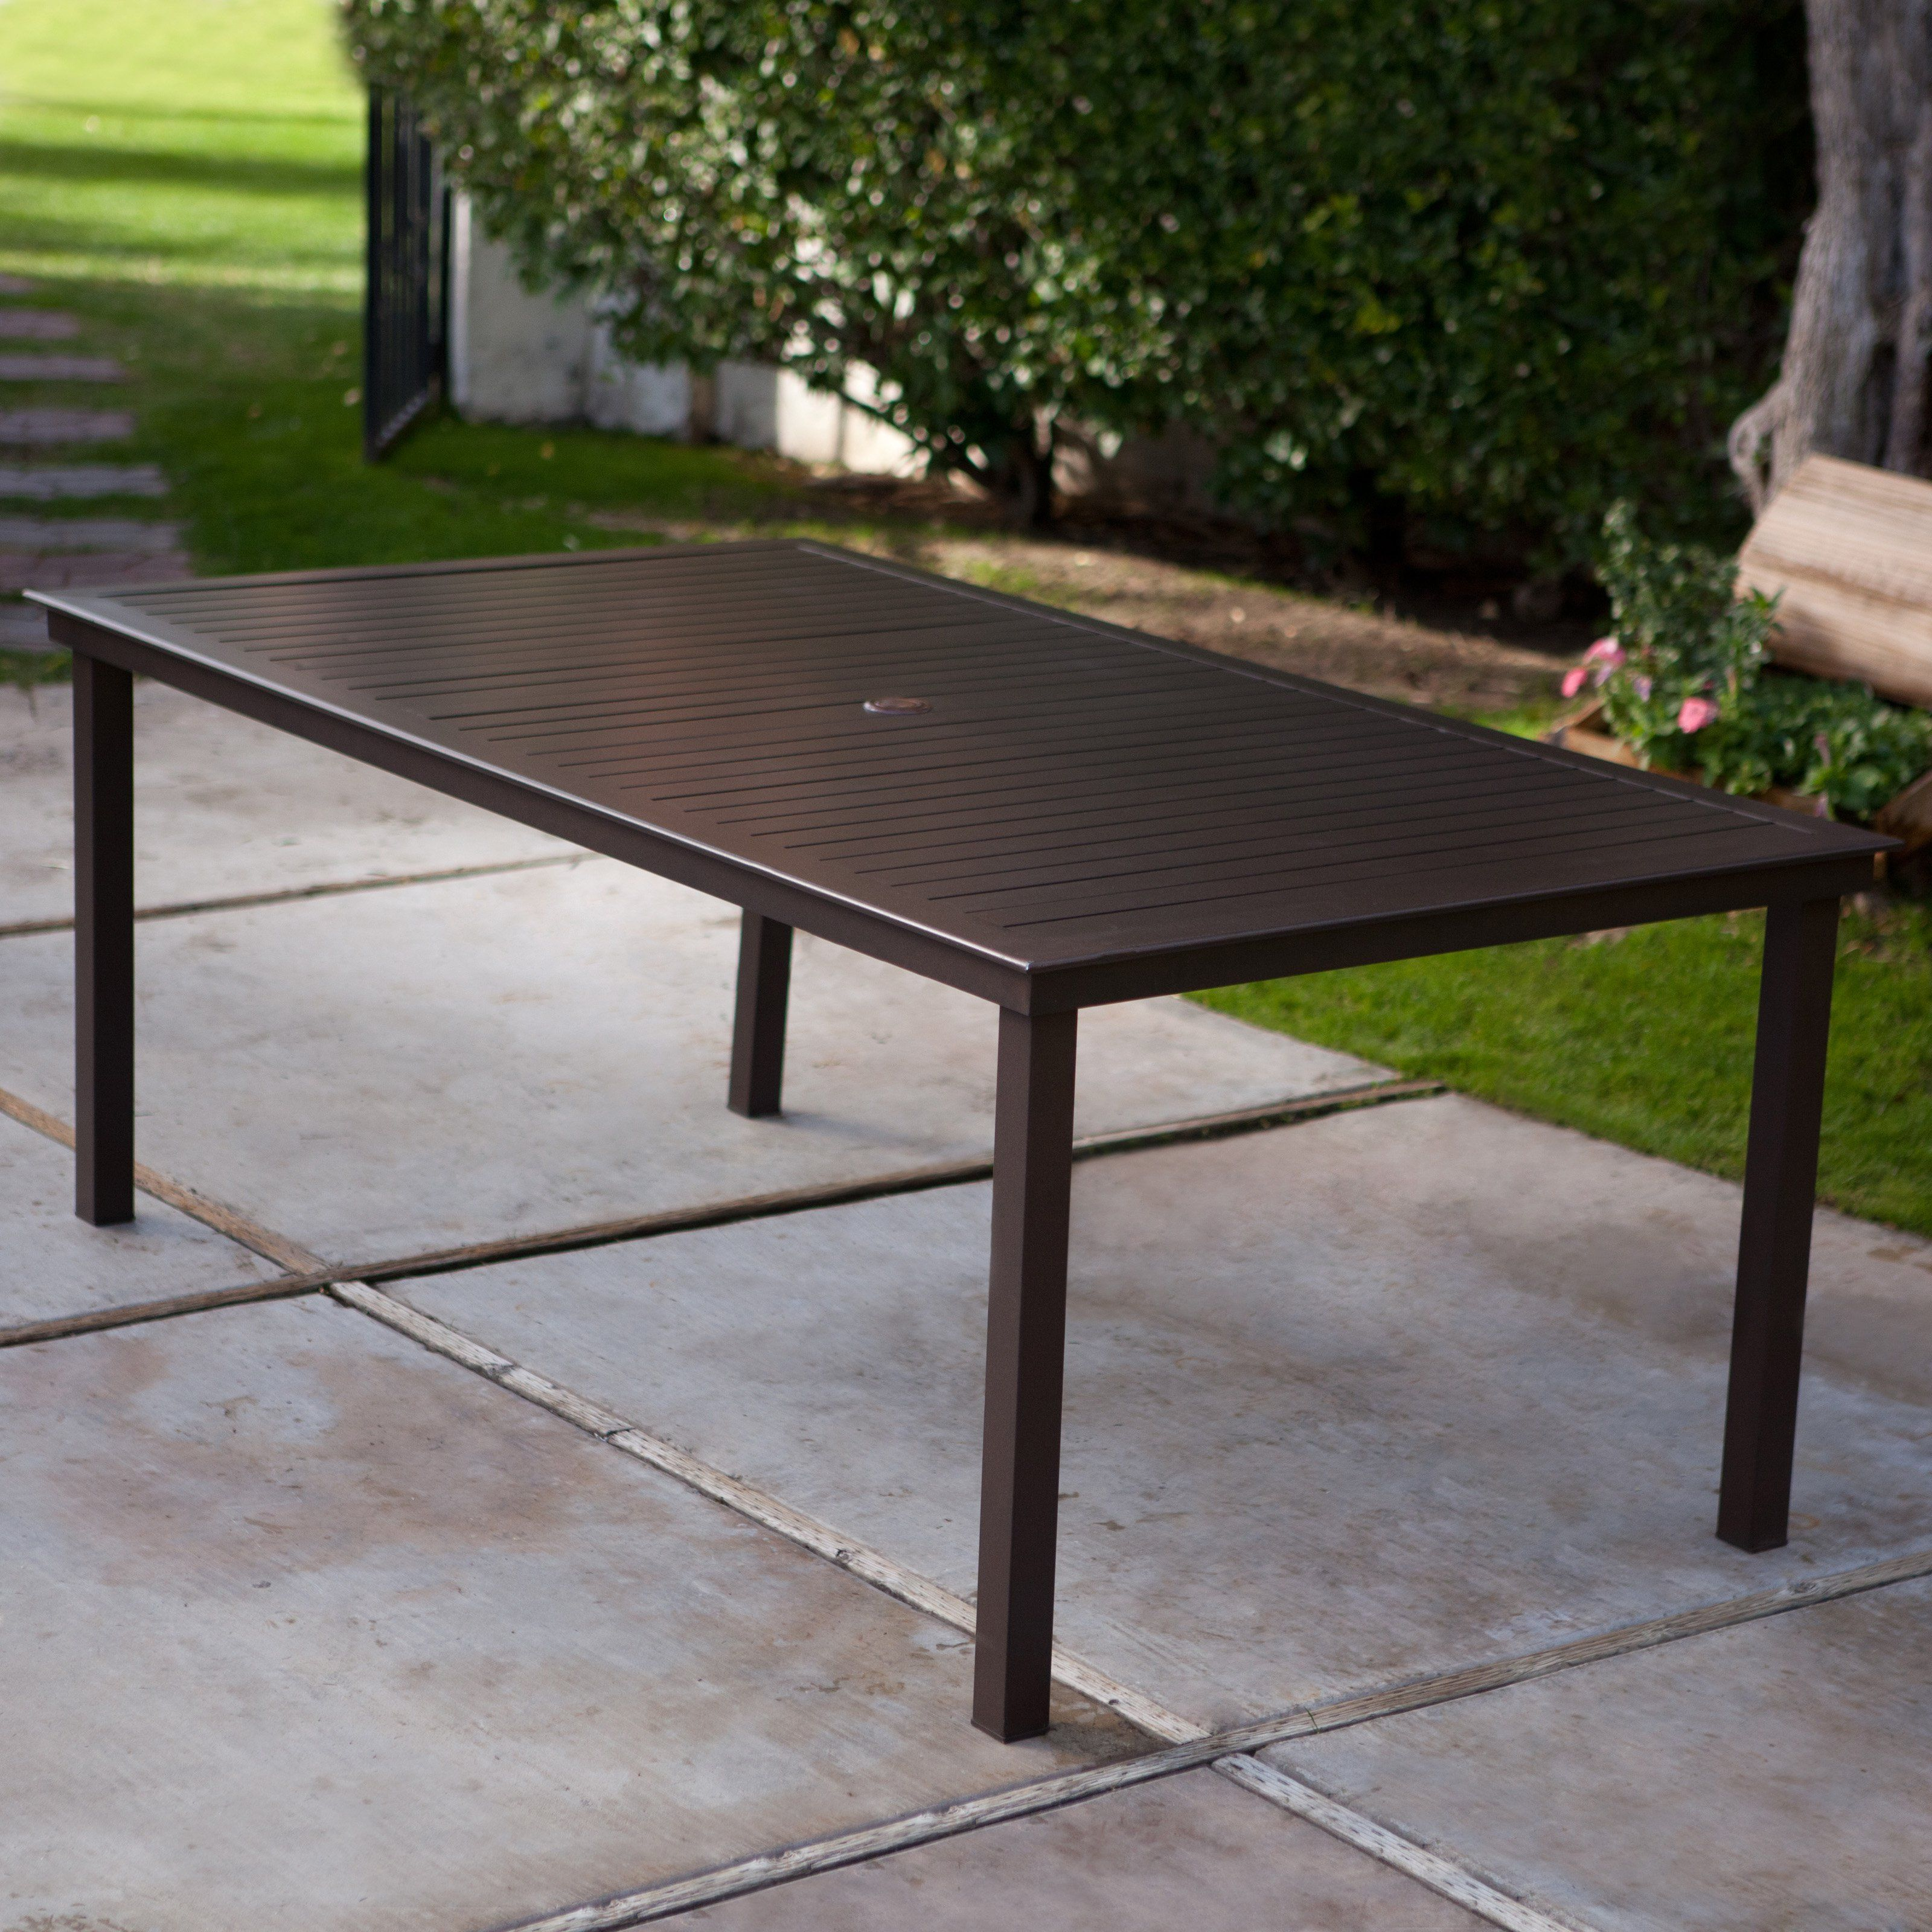 Coral Coast 74 x 42 in Rectangle Aluminum Slat Top Patio Dining